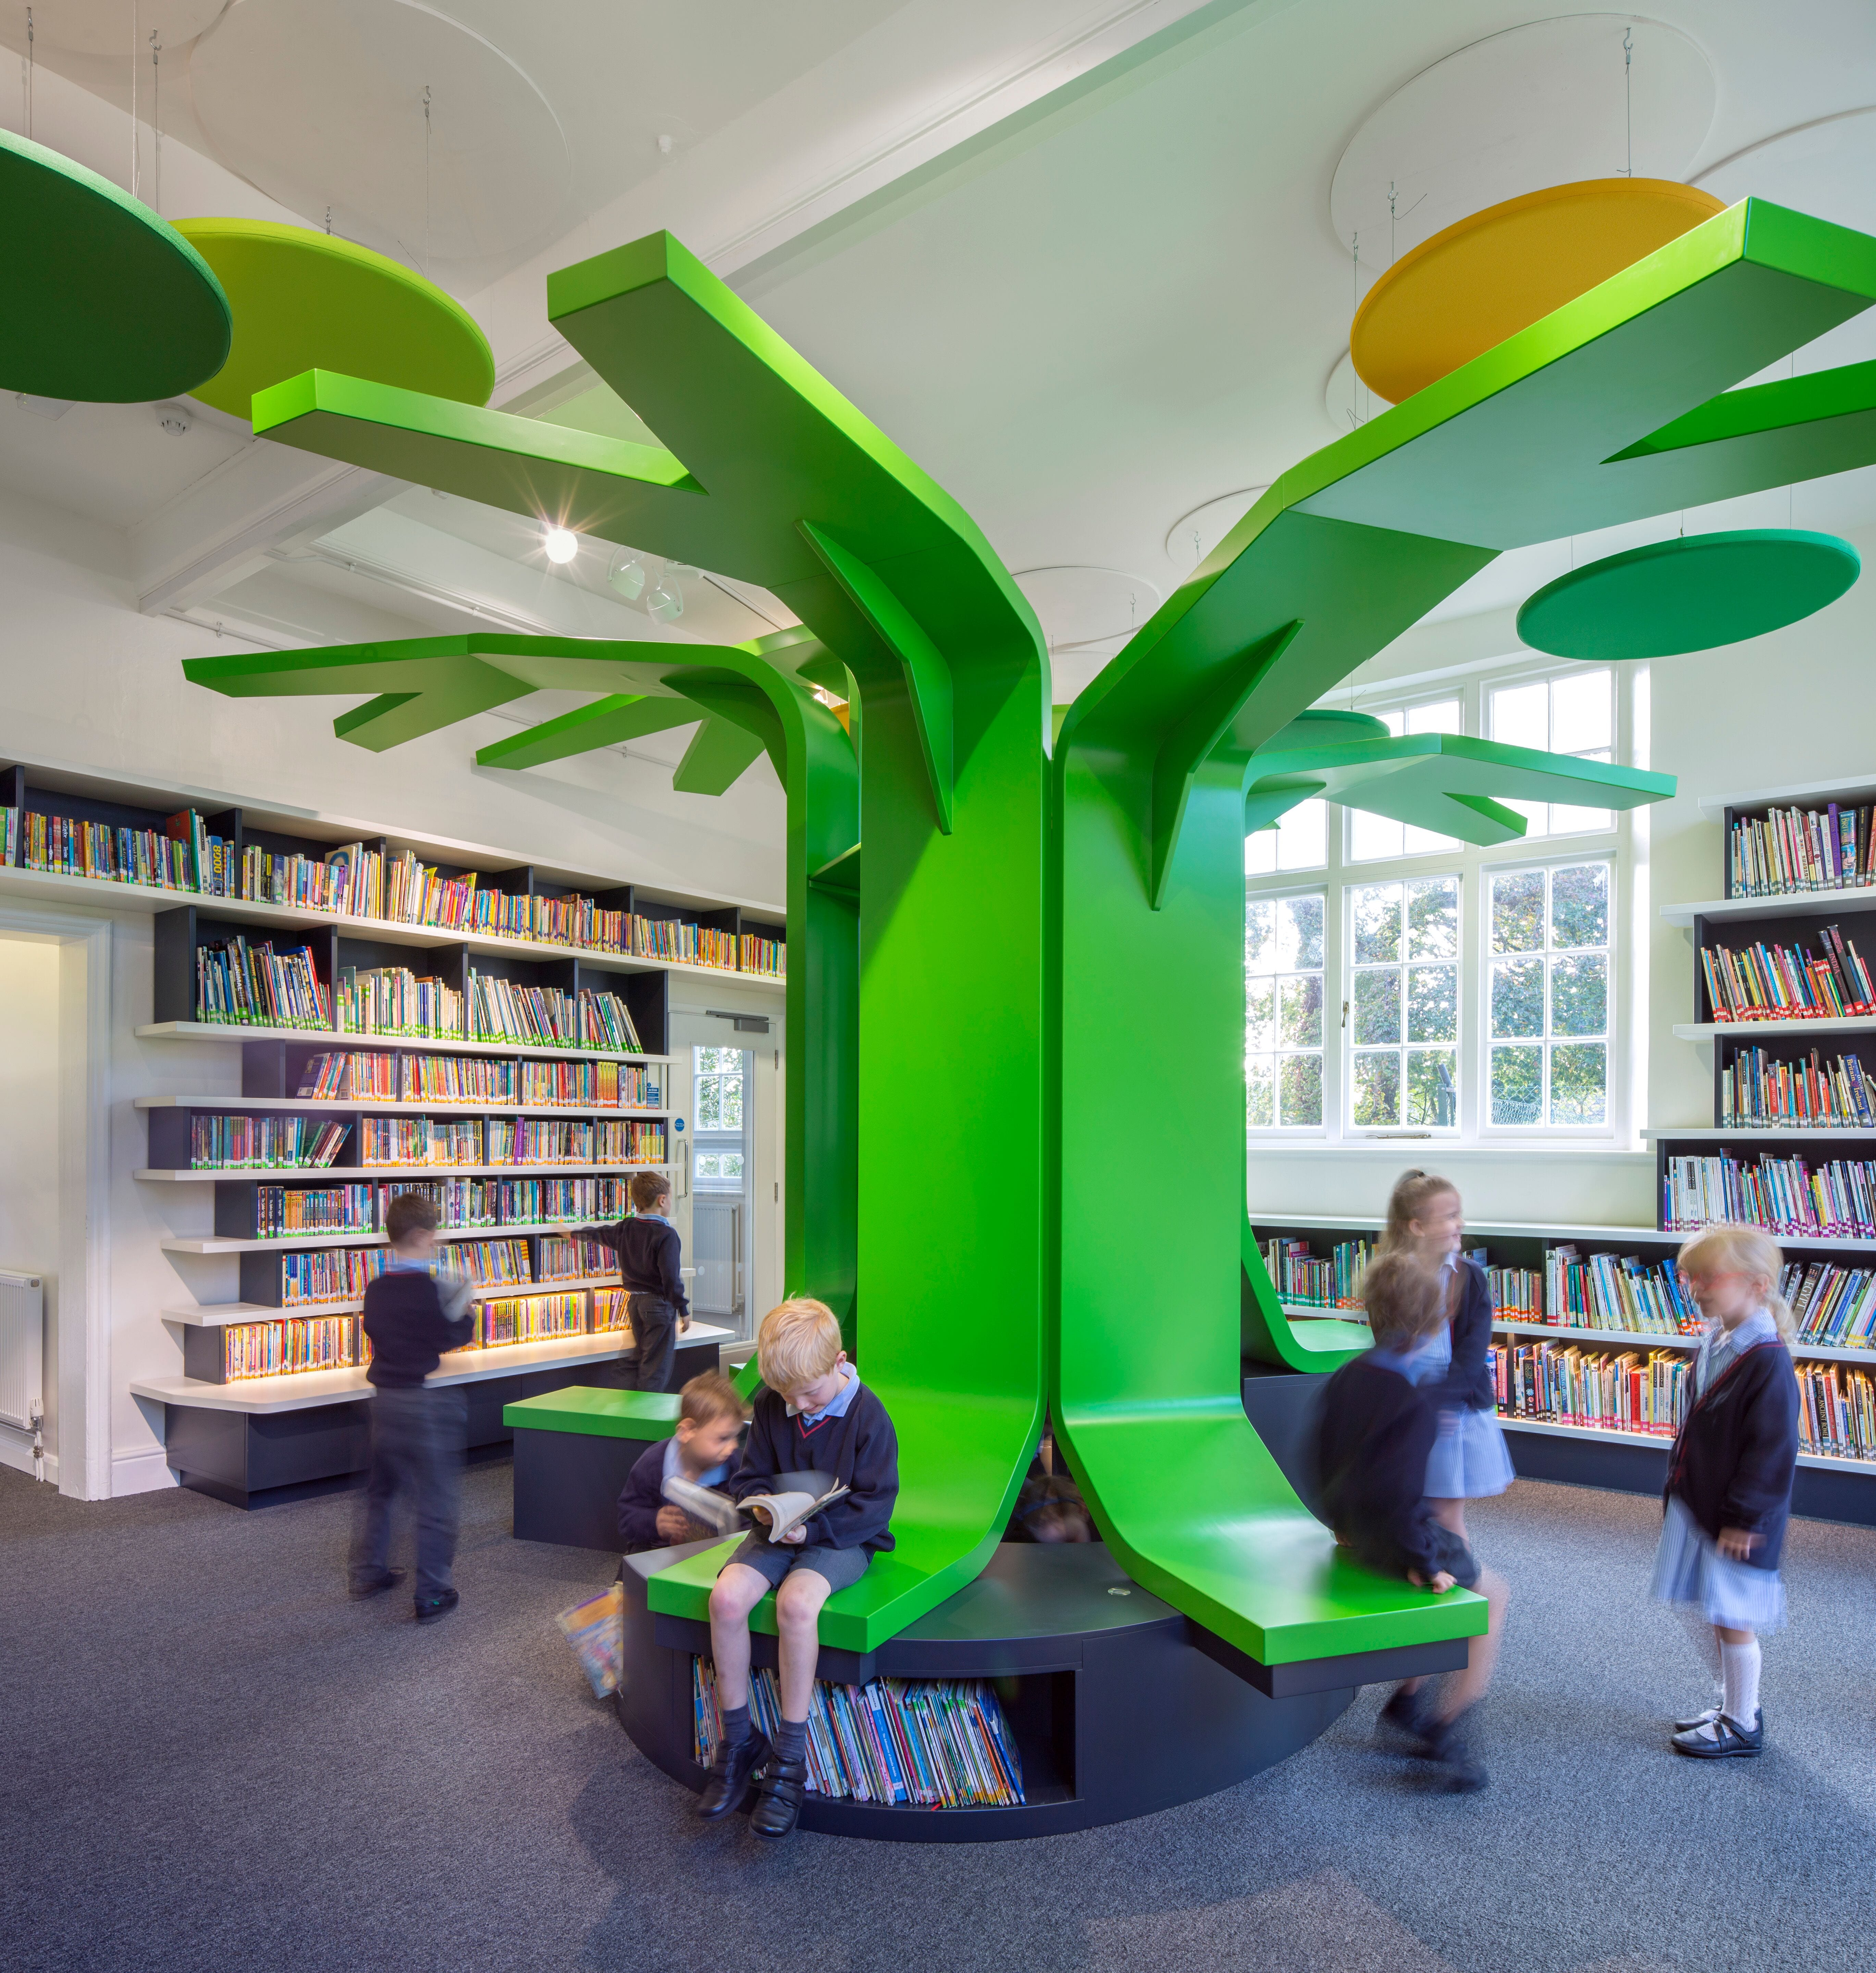 Emphasis In Interior Design  Best The Purpose Of Emphasis Is Two     cool dame bradbury school with emphasis in interior design